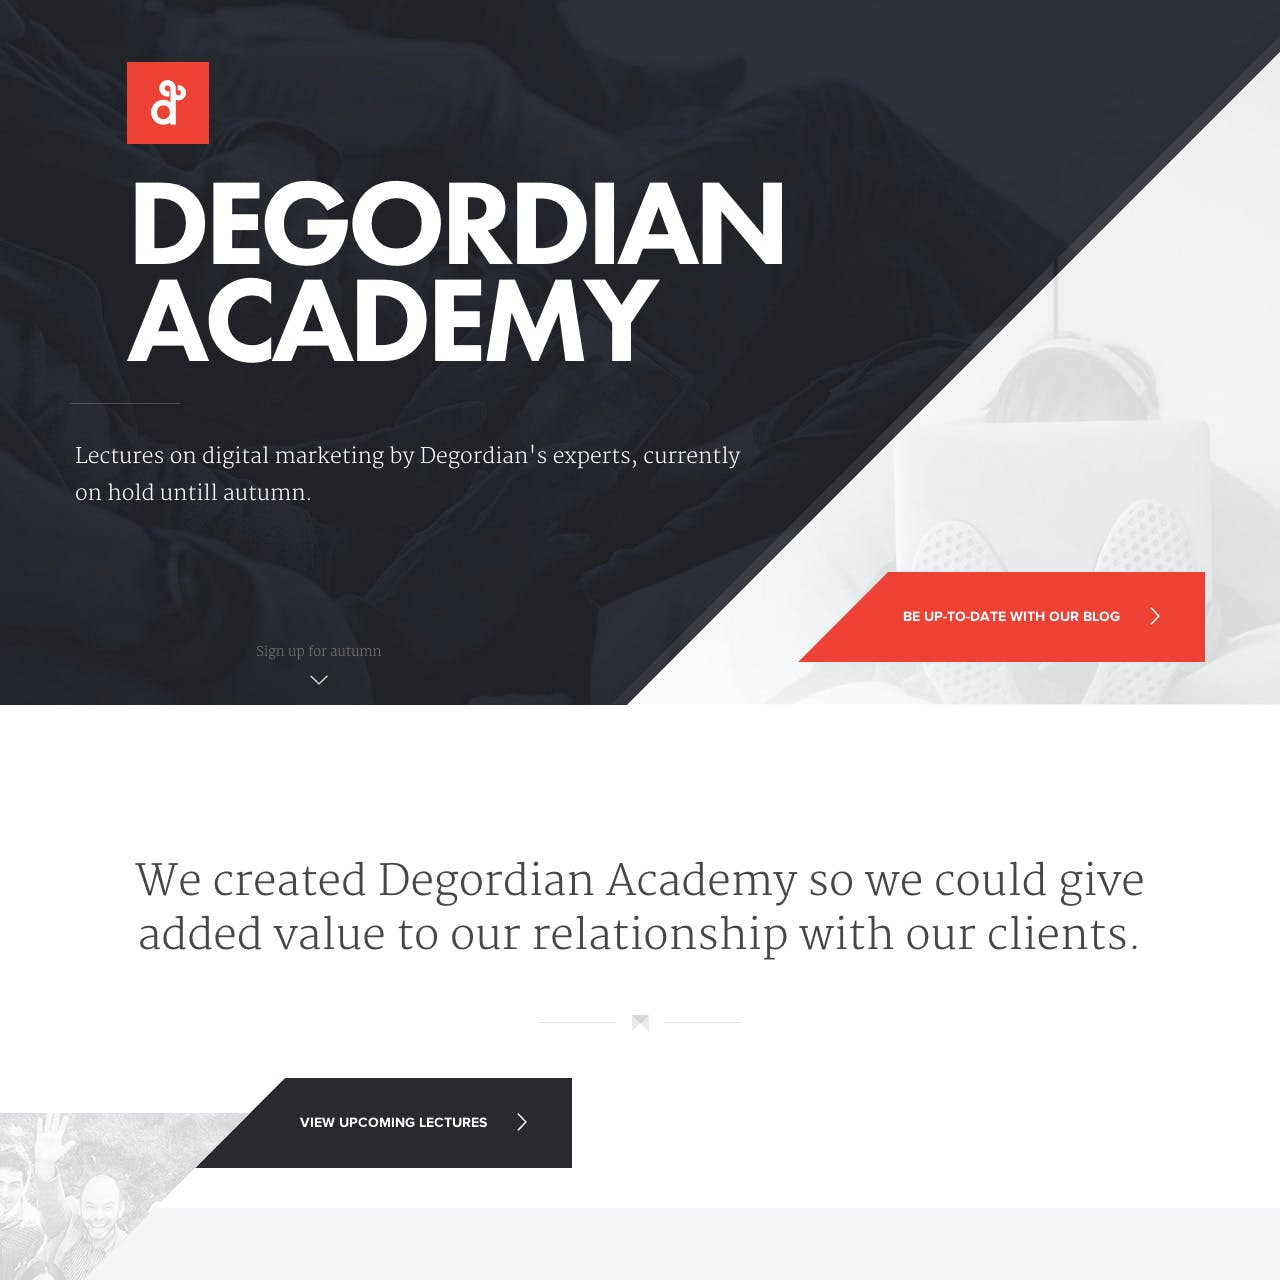 Degordian Academy Website Screenshot